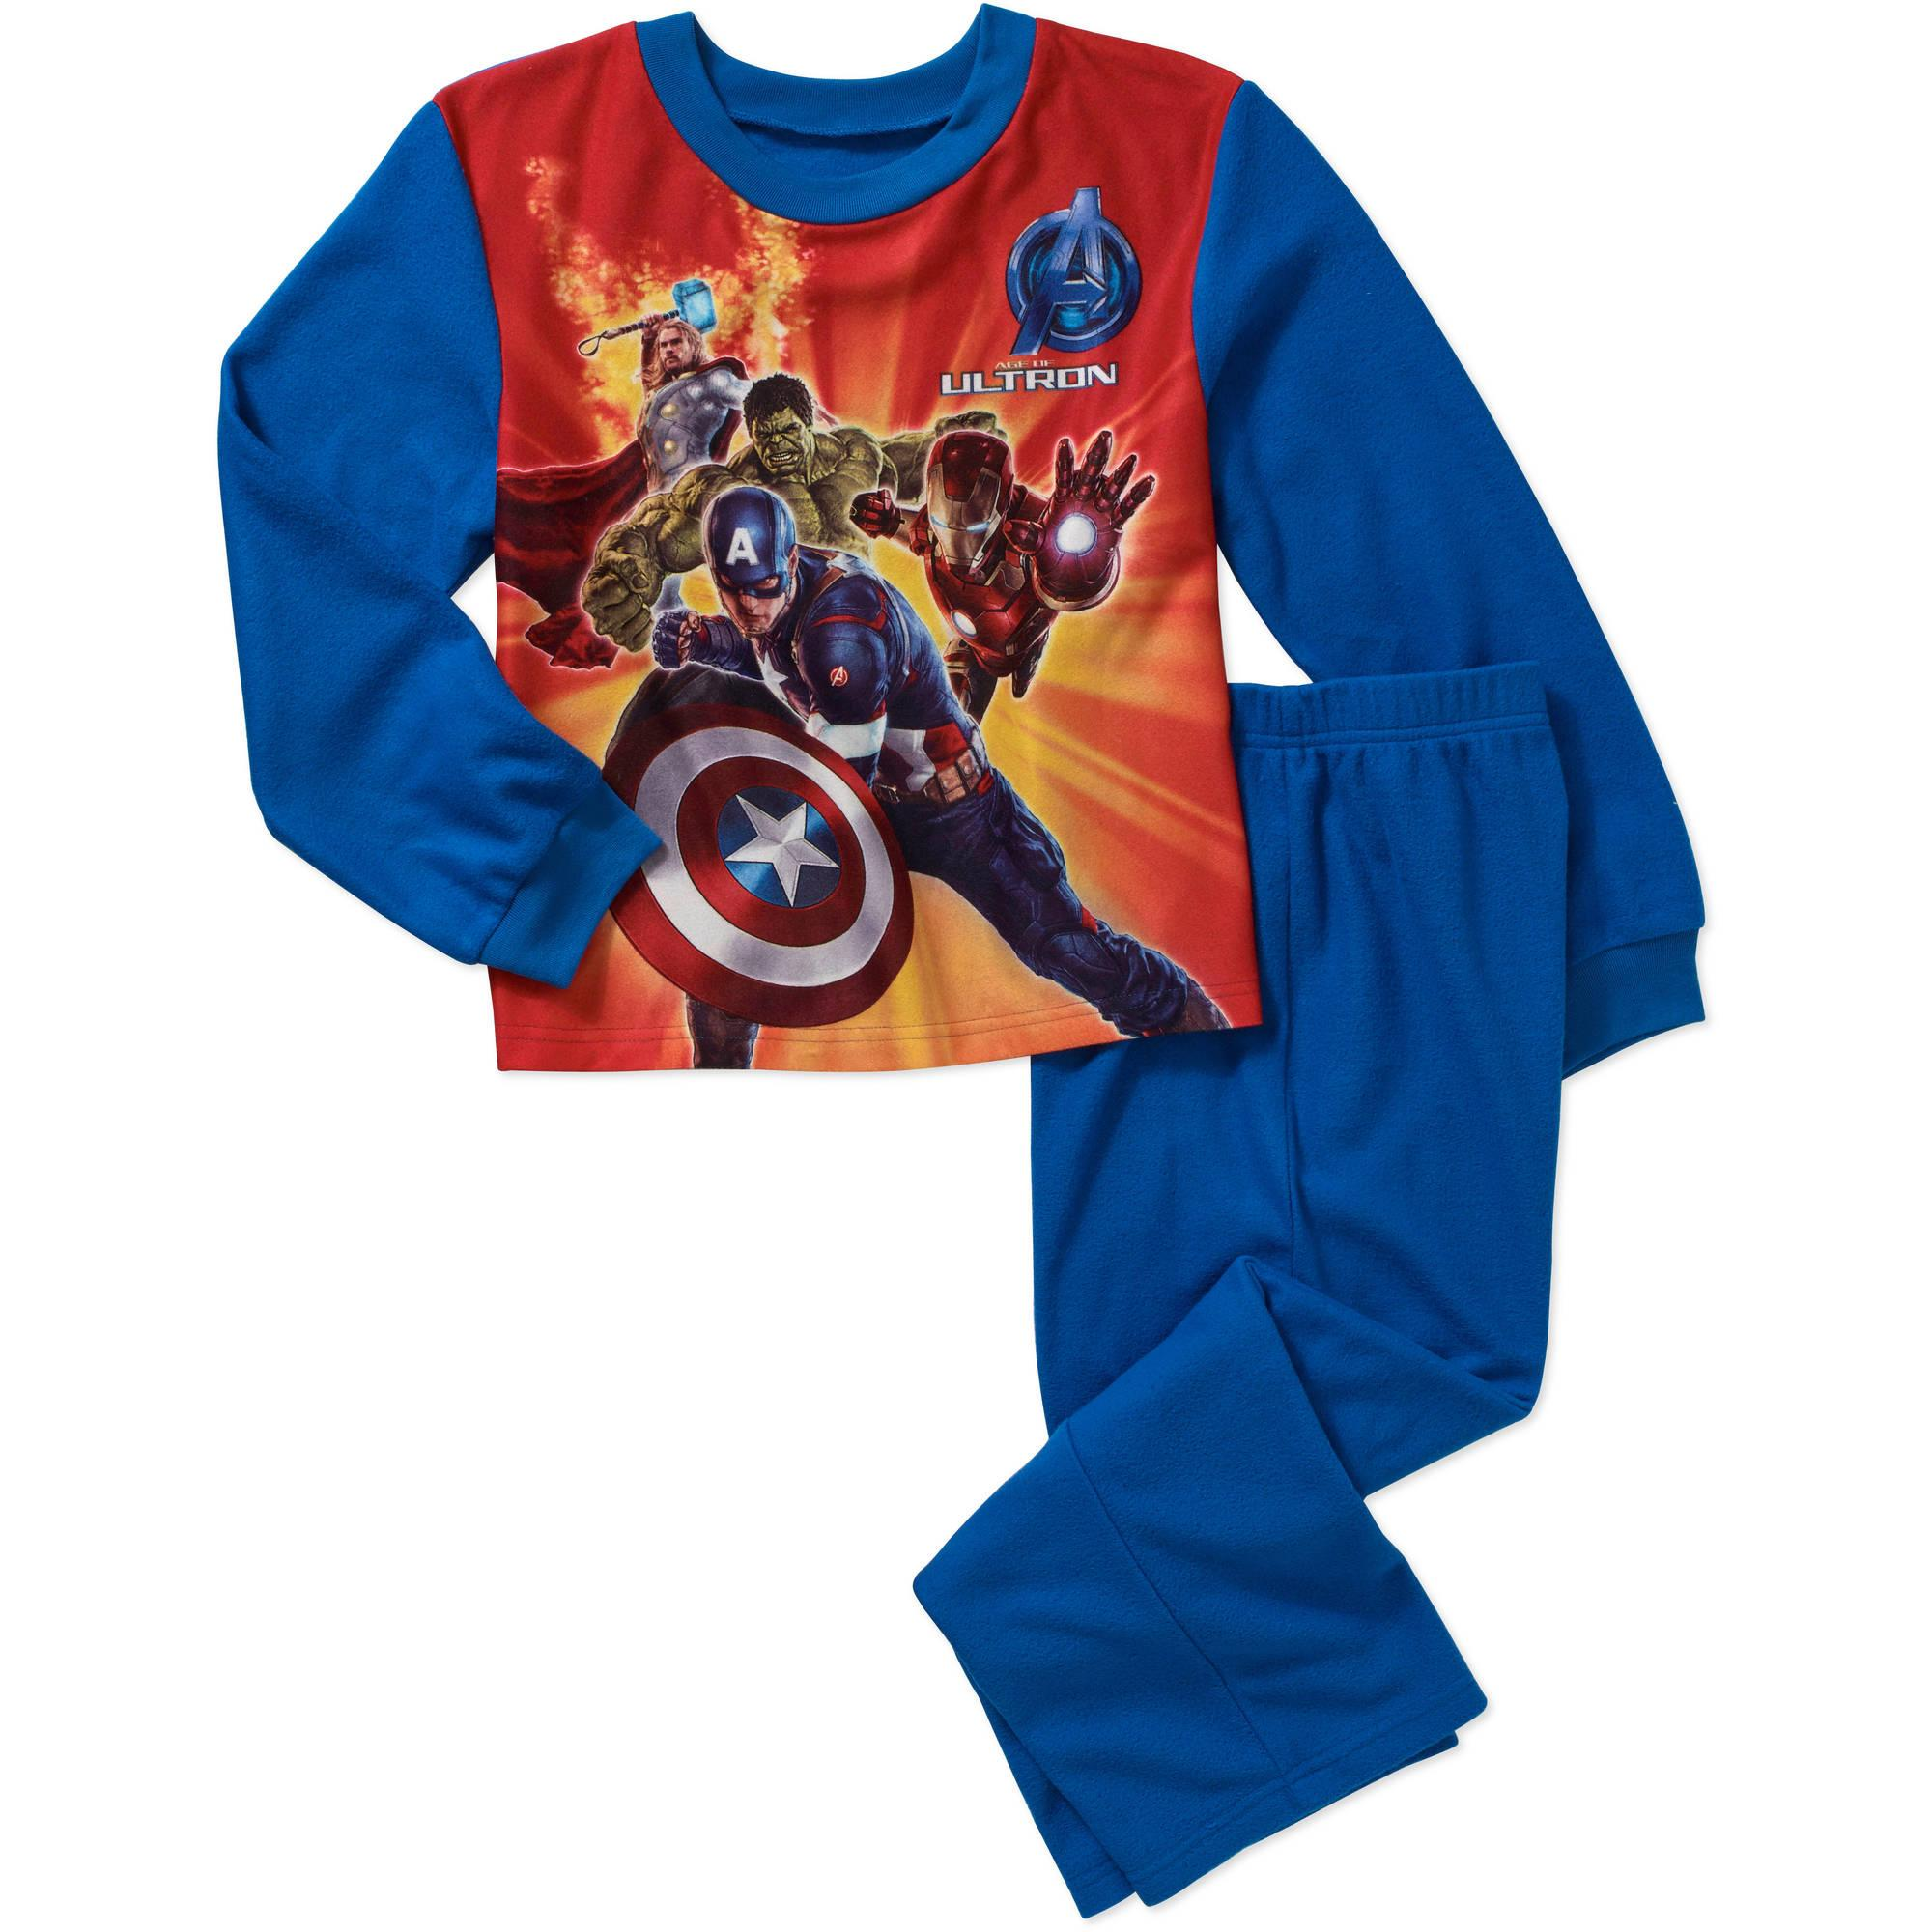 Boy's Avengers & TMNJ Pajama Sets ONLY $4.75 at Walmart!